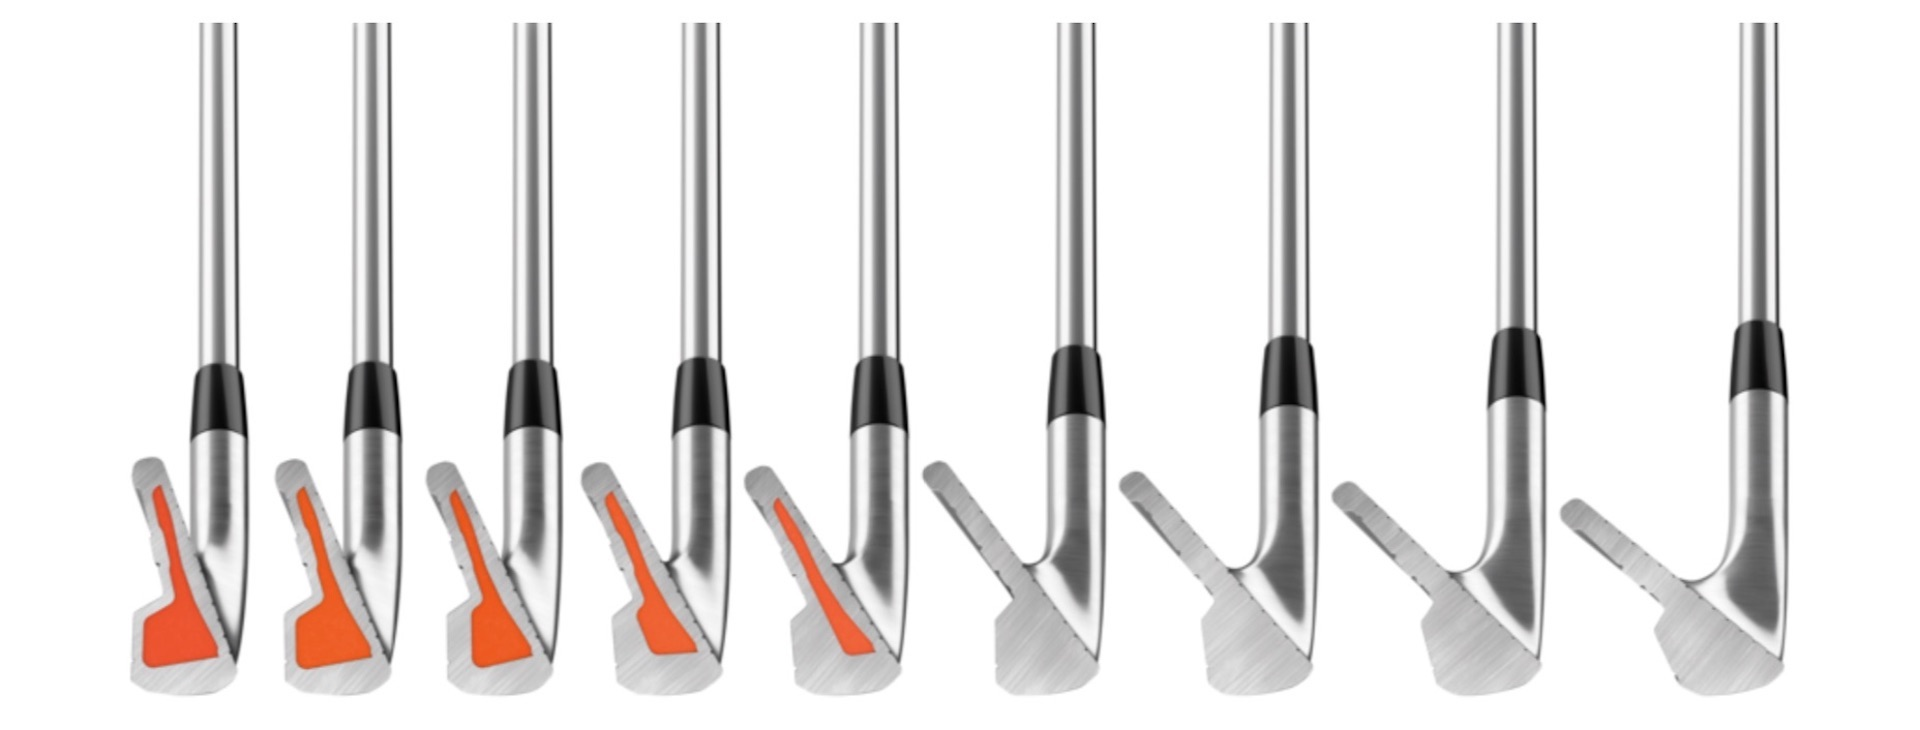 TaylorMade Announces Addition to Players Irons Lineup